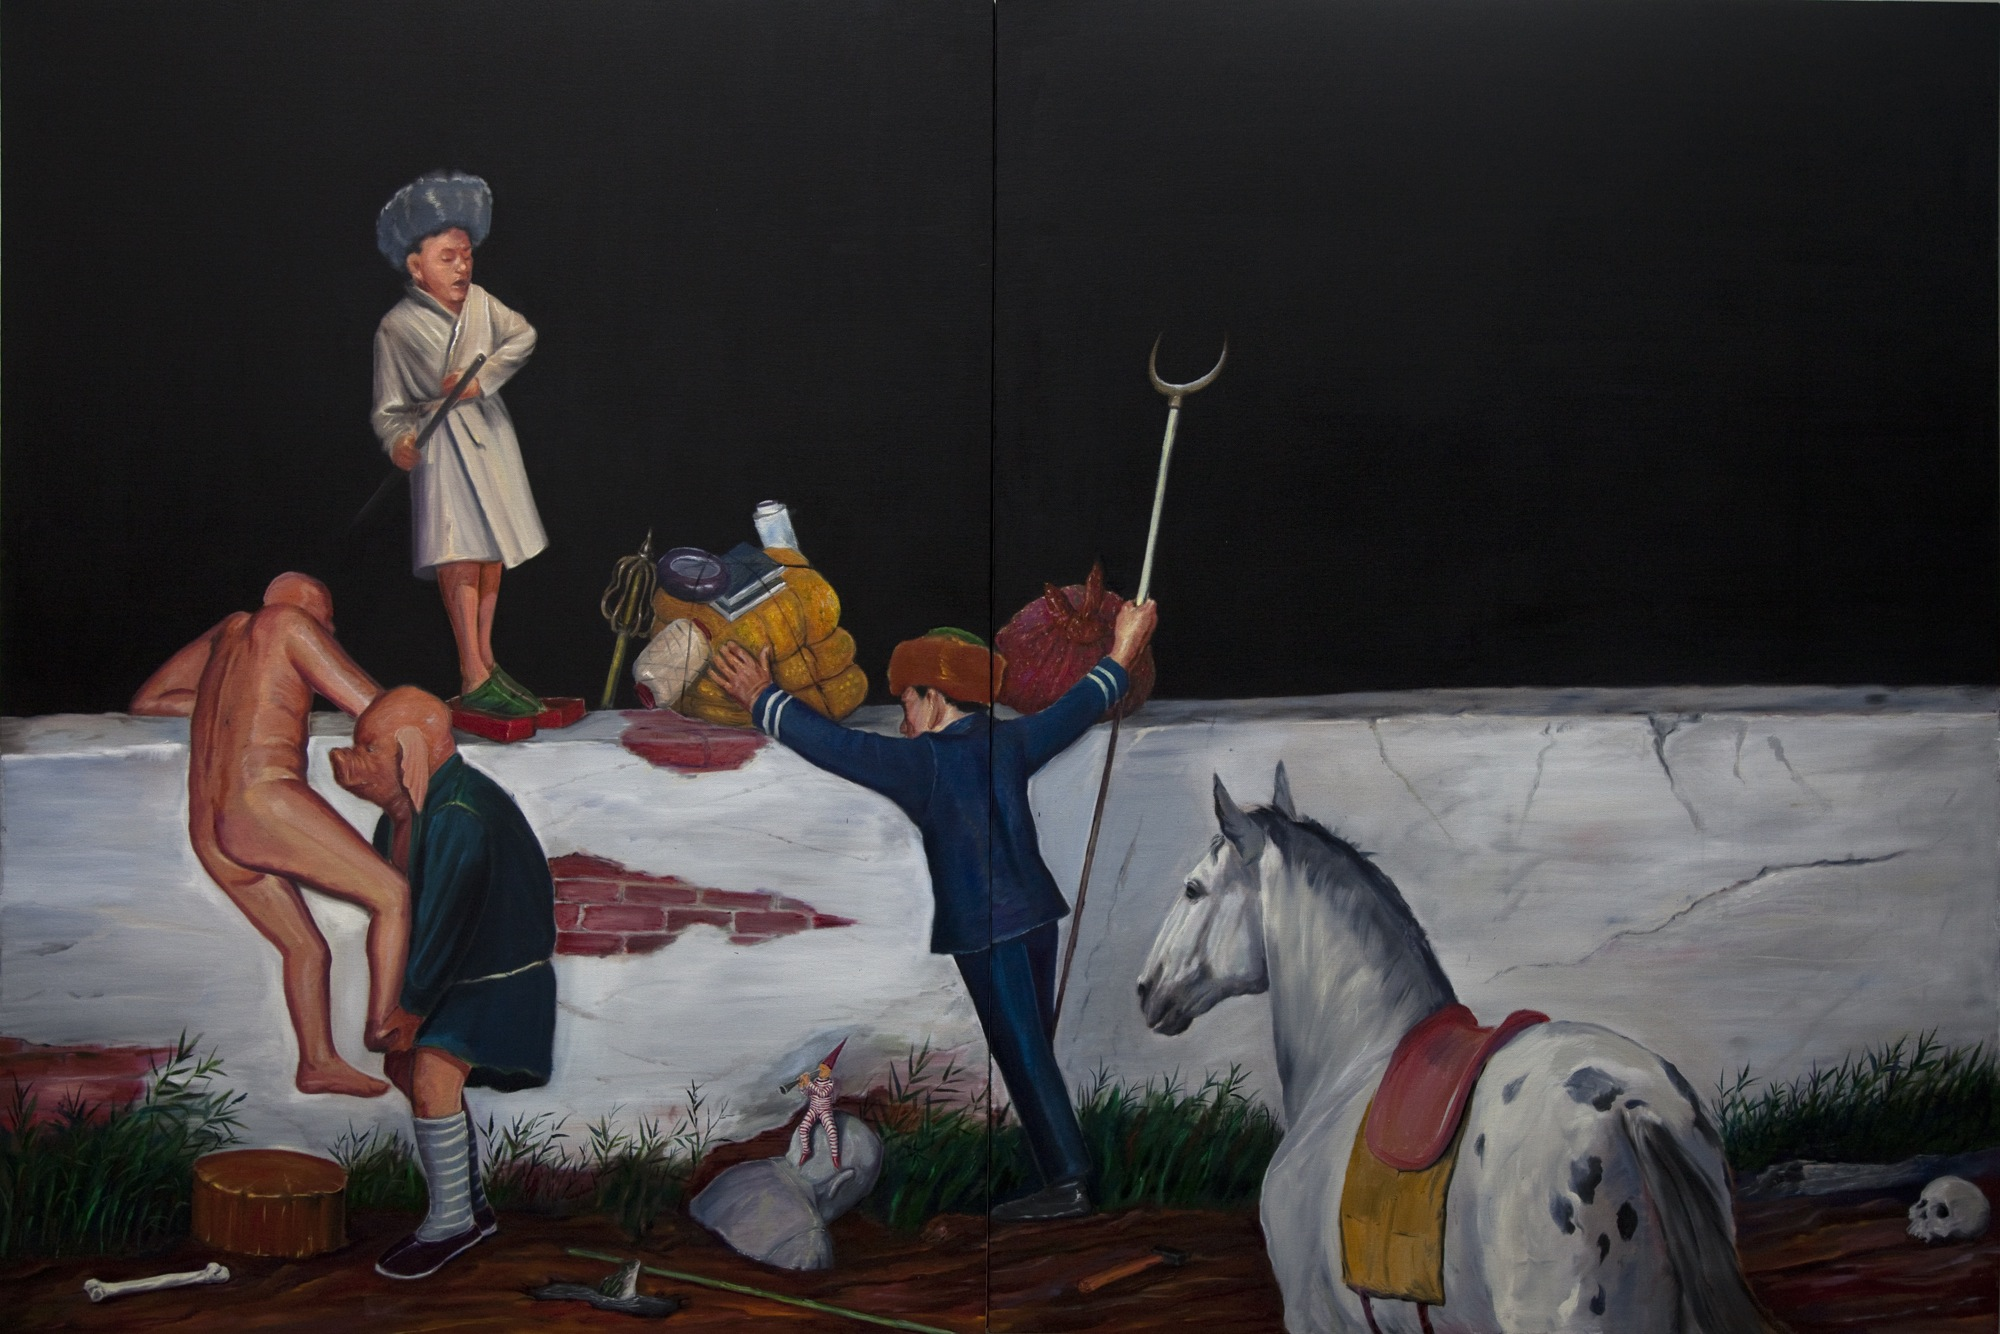 Wu Junyong 吴俊勇, Journey to the Other Side of the Wall 翻墙记, 2011, Oil on canvas 布面油画, 200 x 300 cm